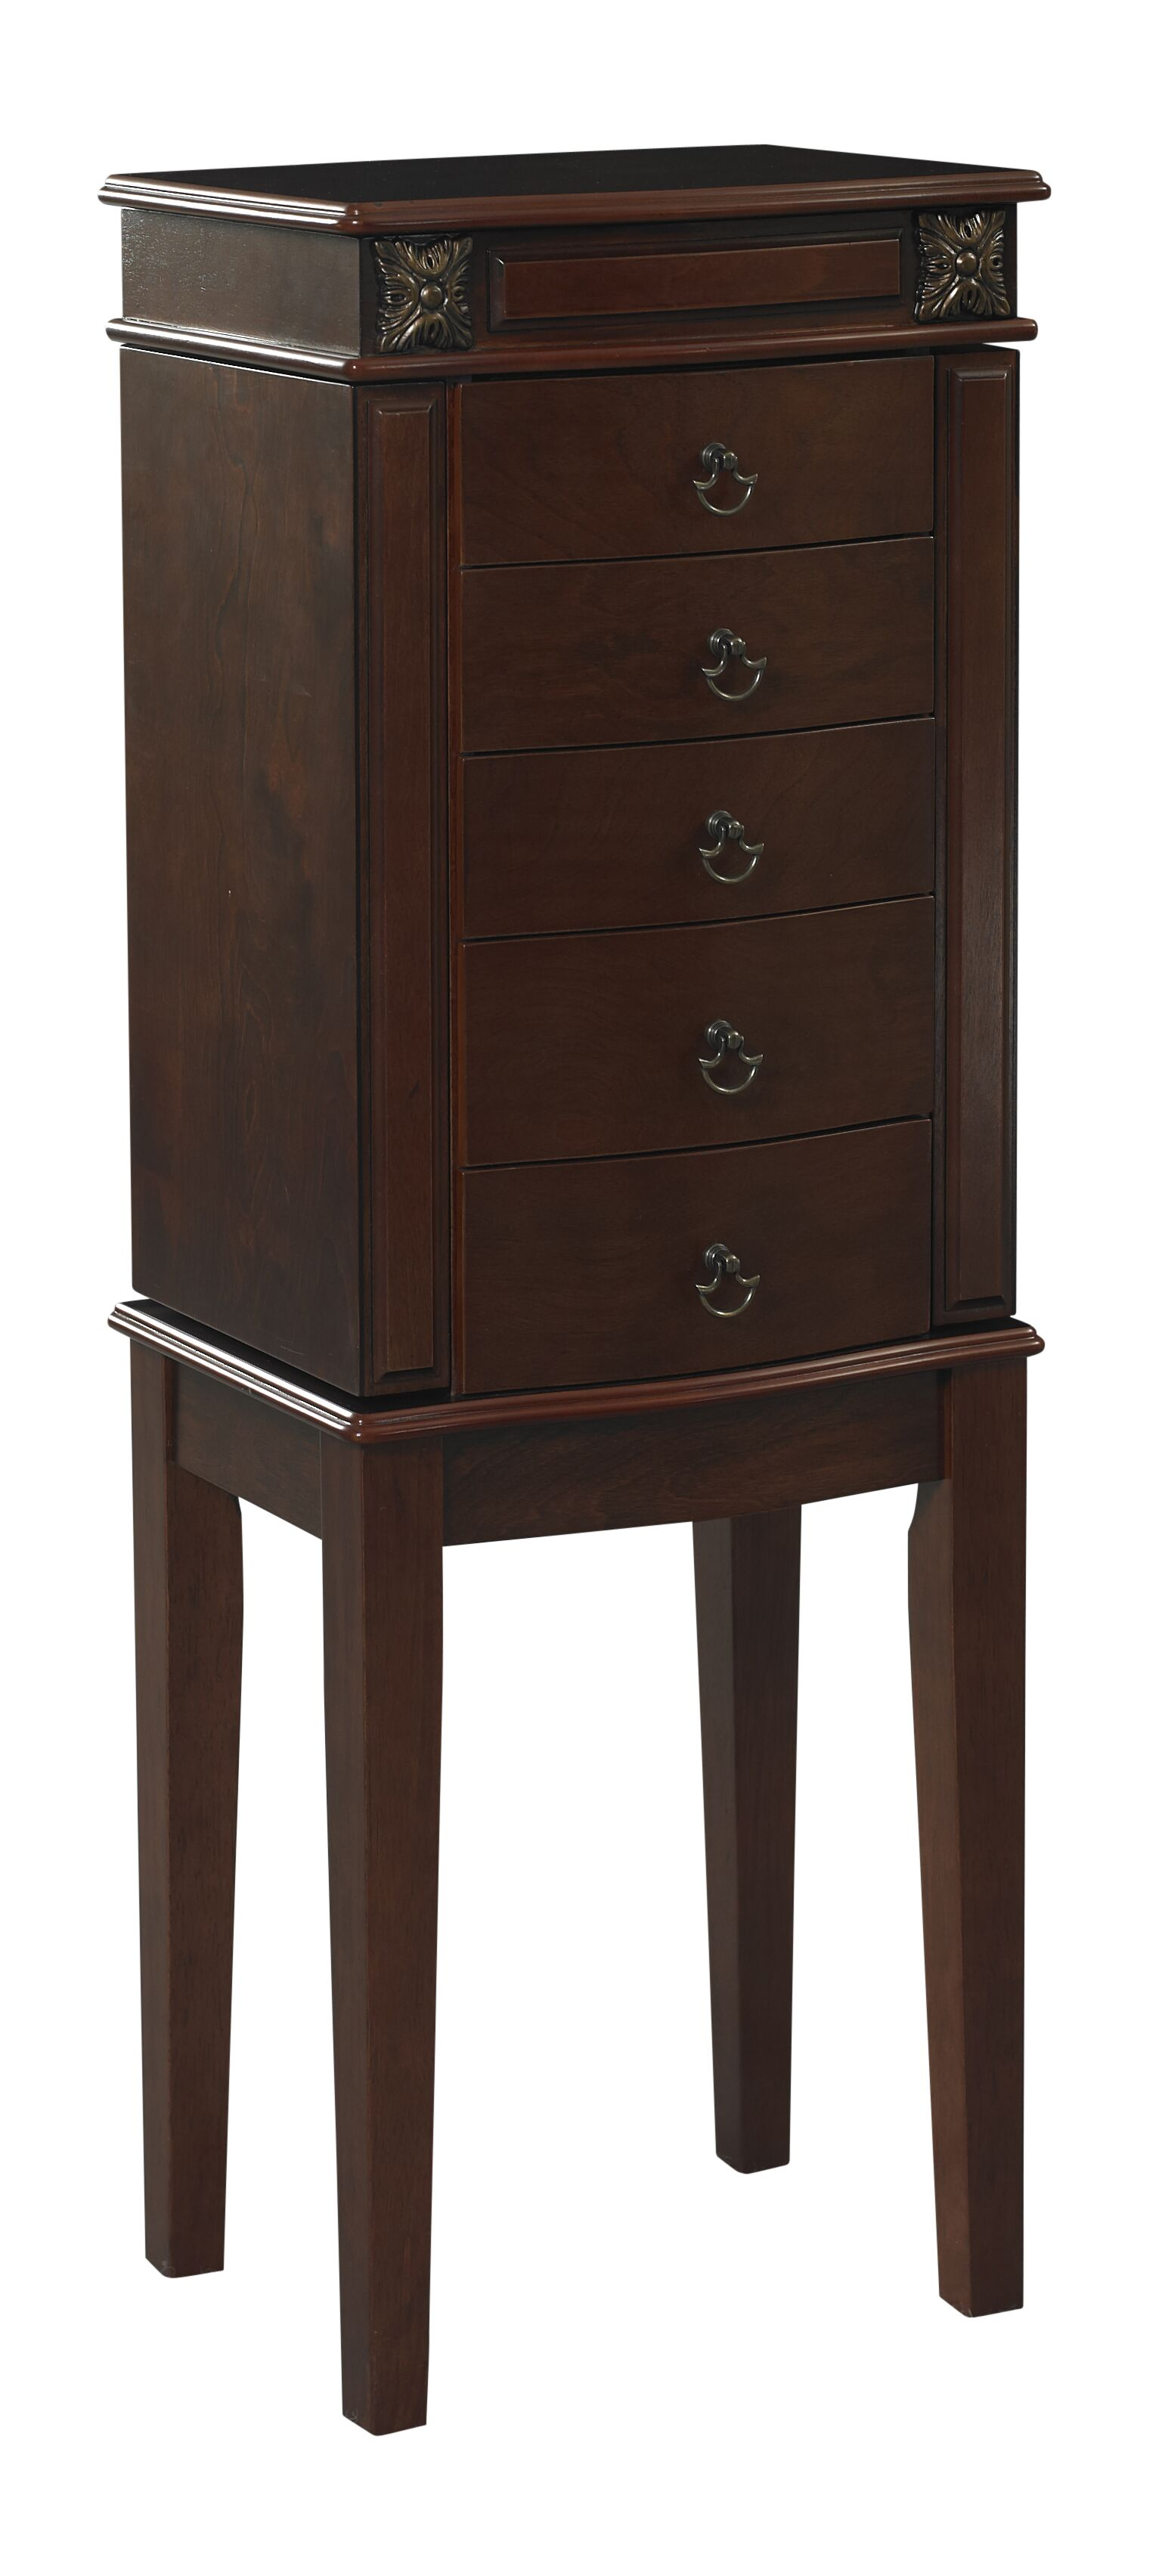 Russellville Free Standing Jewelry Armoire with Mirror